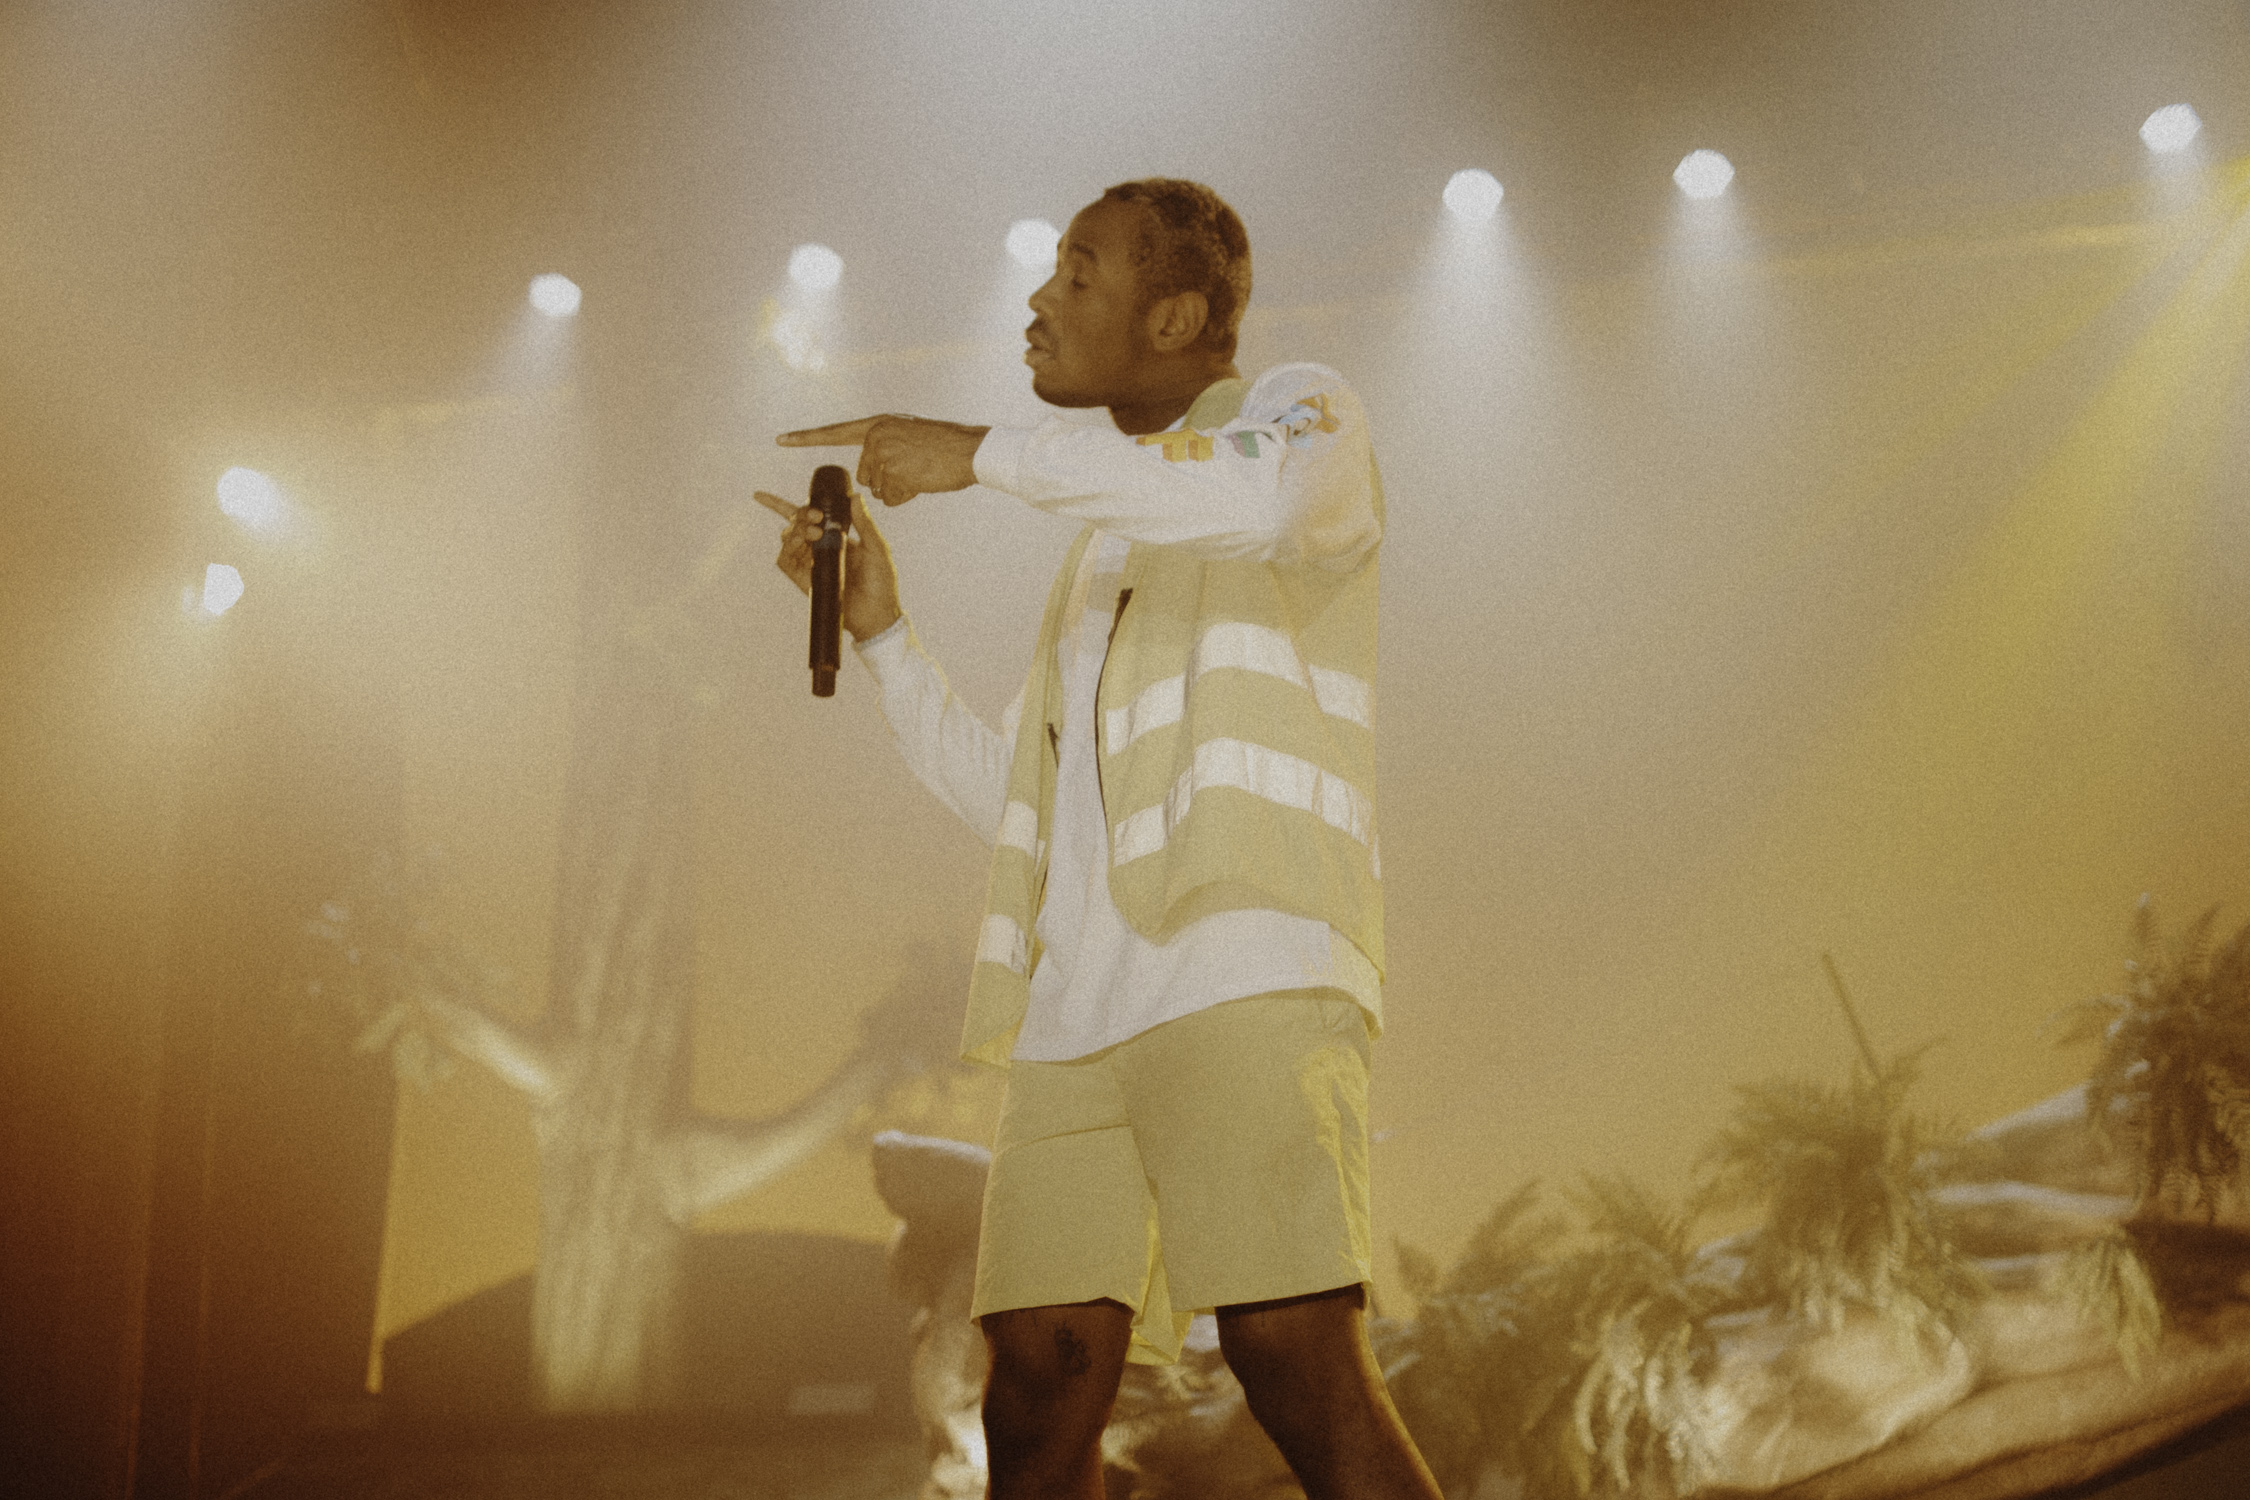 Tyler, The Creator & Vince Staples at the Main Street Armory (02/21/18)